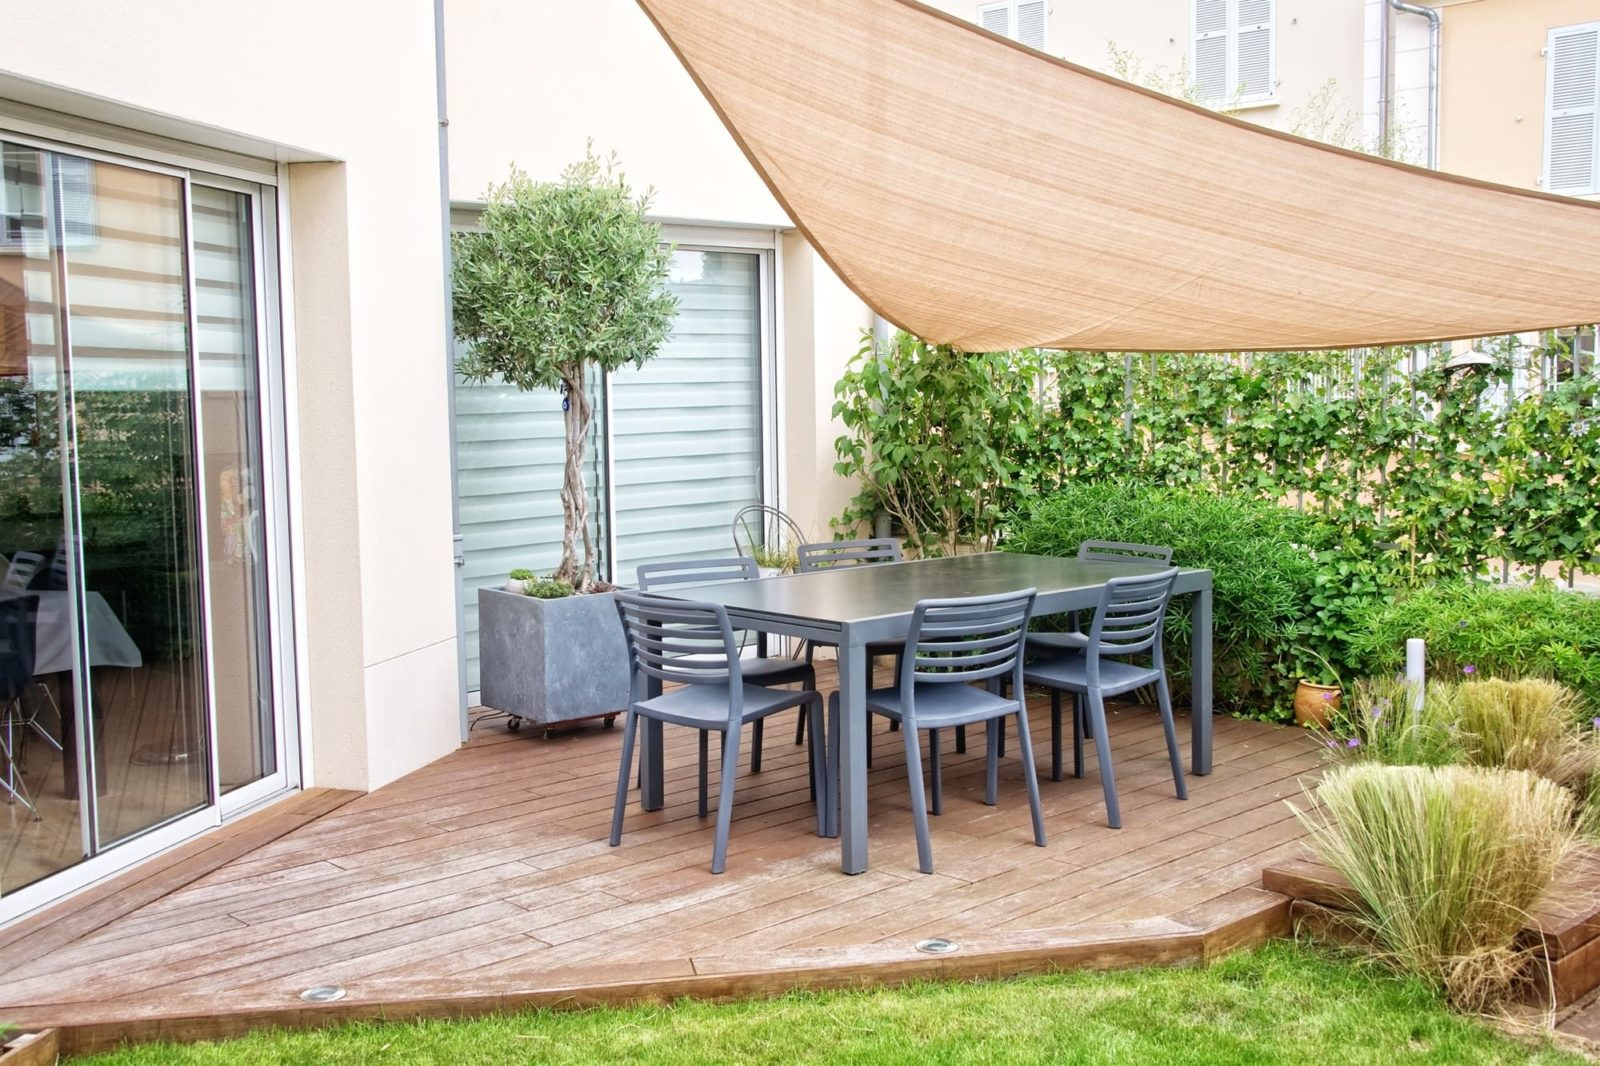 garden with decking, furniture and parasol